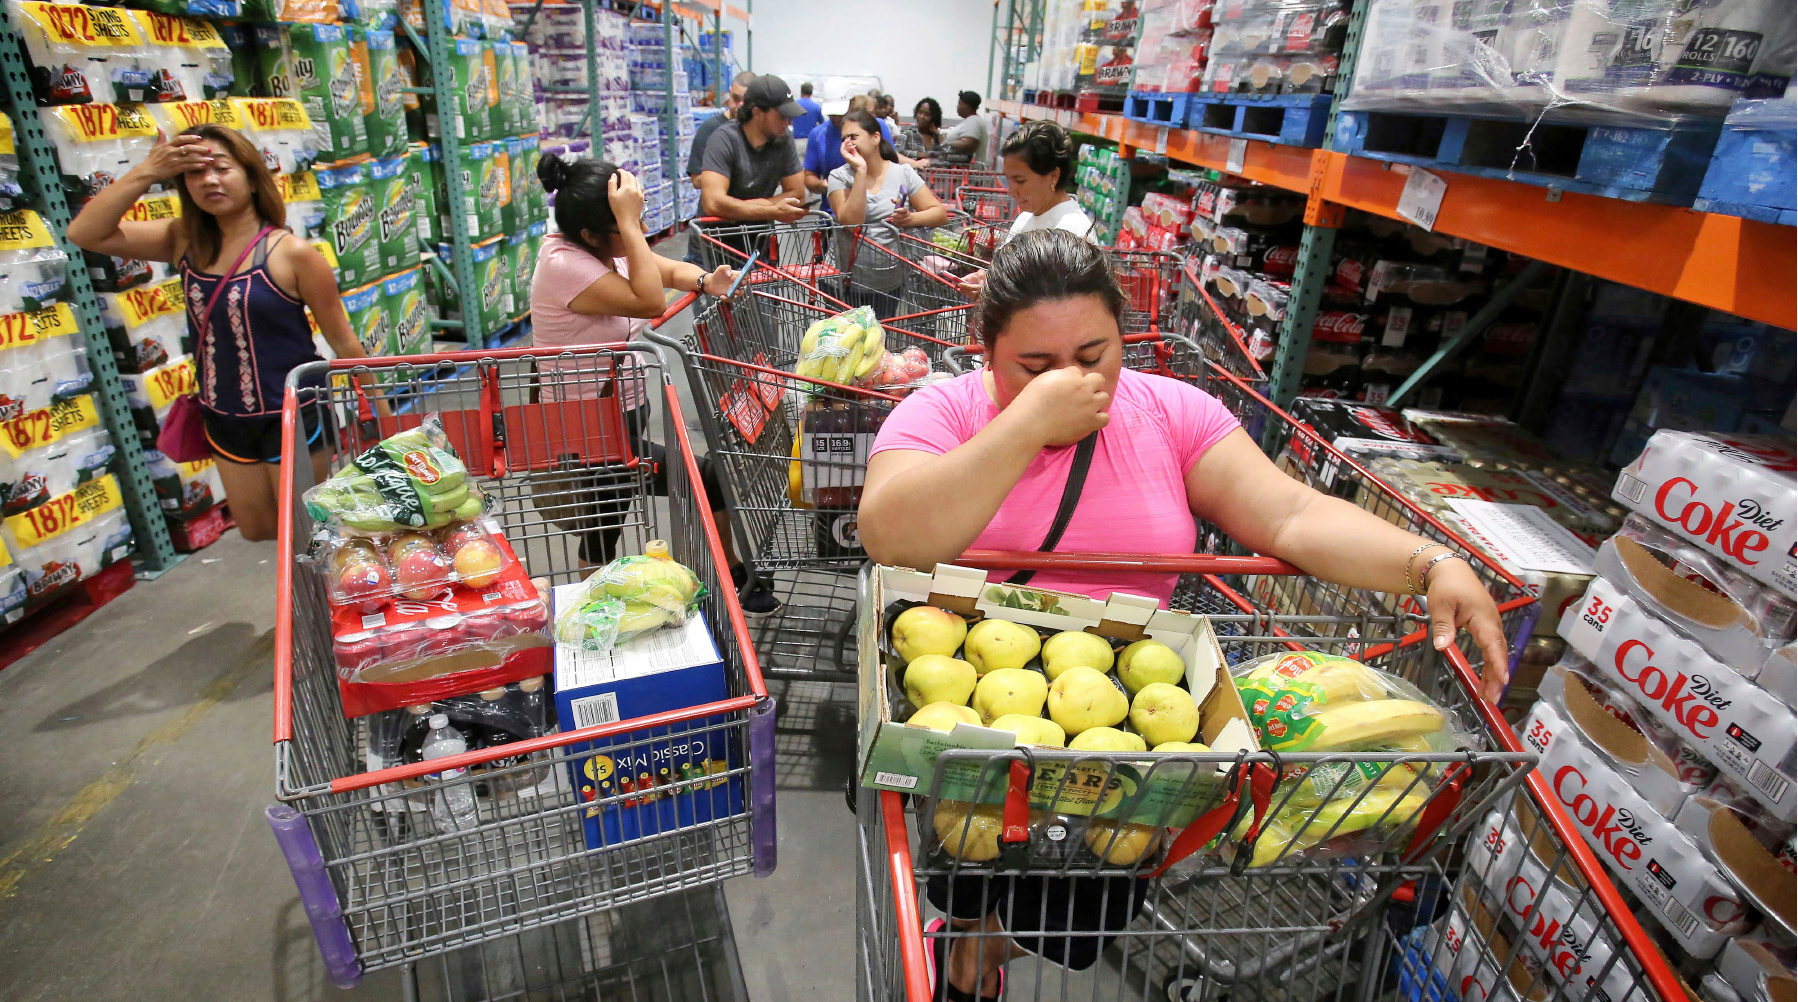 Shoppers wait in line for the arrival of a shipment of water during preparations for the impending arrival of Hurricane Irma, Wednesday, Sept. 6, 2017 in Altamonte Springs, Fla.  Irma roared into the Caribbean with record force early Wednesday, its 185-mph winds shaking homes and flooding buildings on a chain of small islands along a path toward Puerto Rico, Cuba and Hispaniola and a possible direct hit on densely populated South Florida.  (Joe Burbank/Orlando Sentinel via AP)